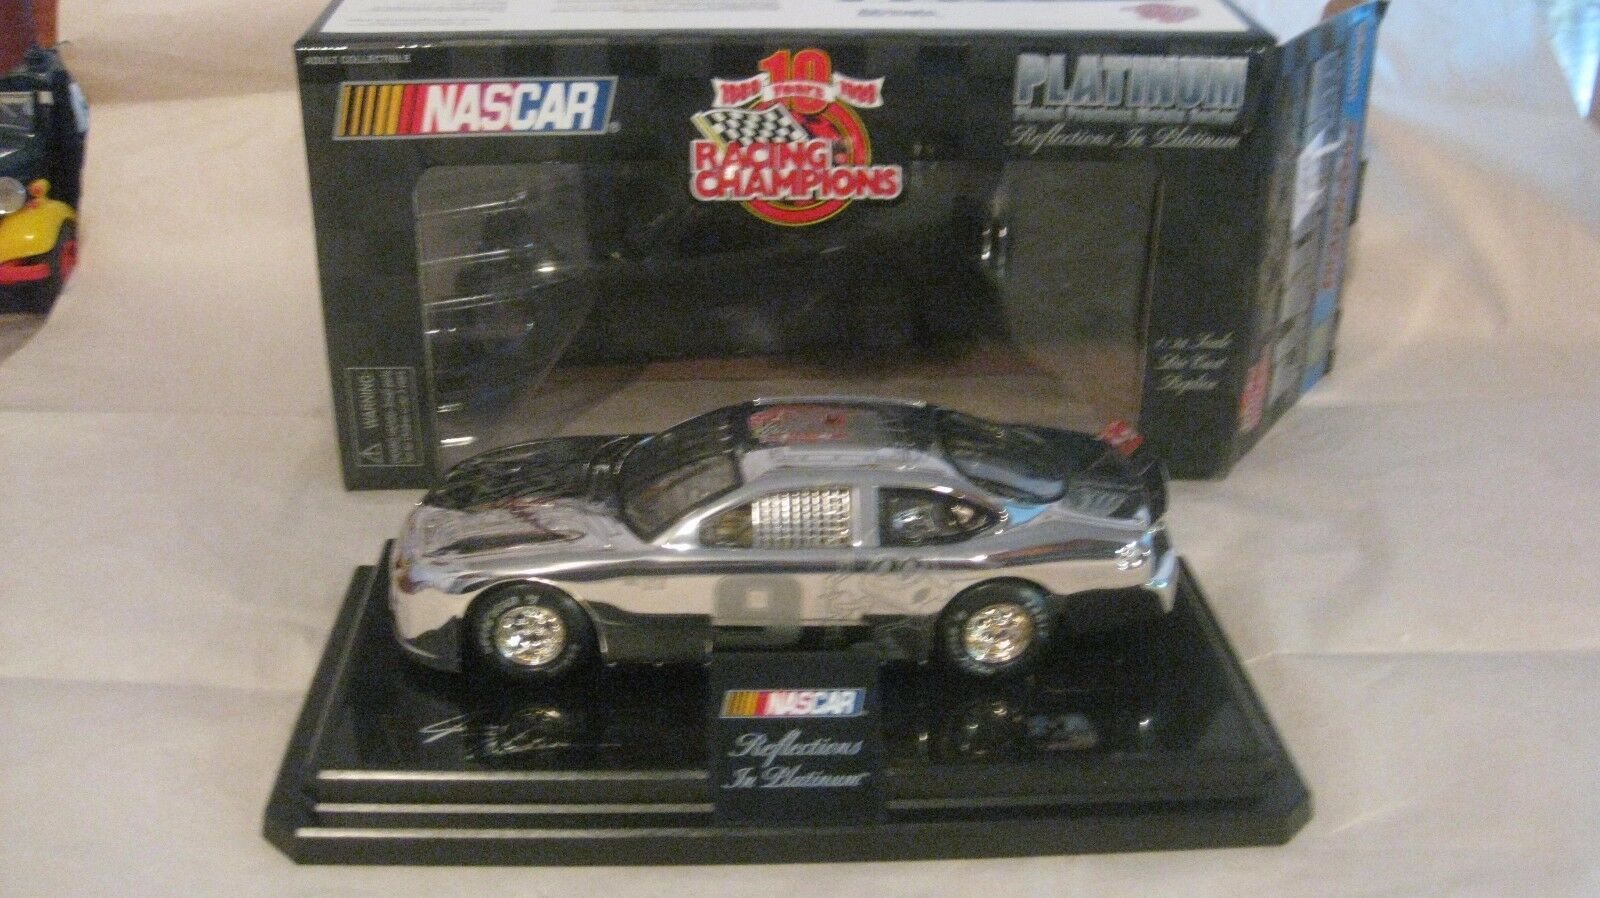 Jerry Nadeau Nascar Trackside firmado Cartoon Network Taurus 124 escala Diecast